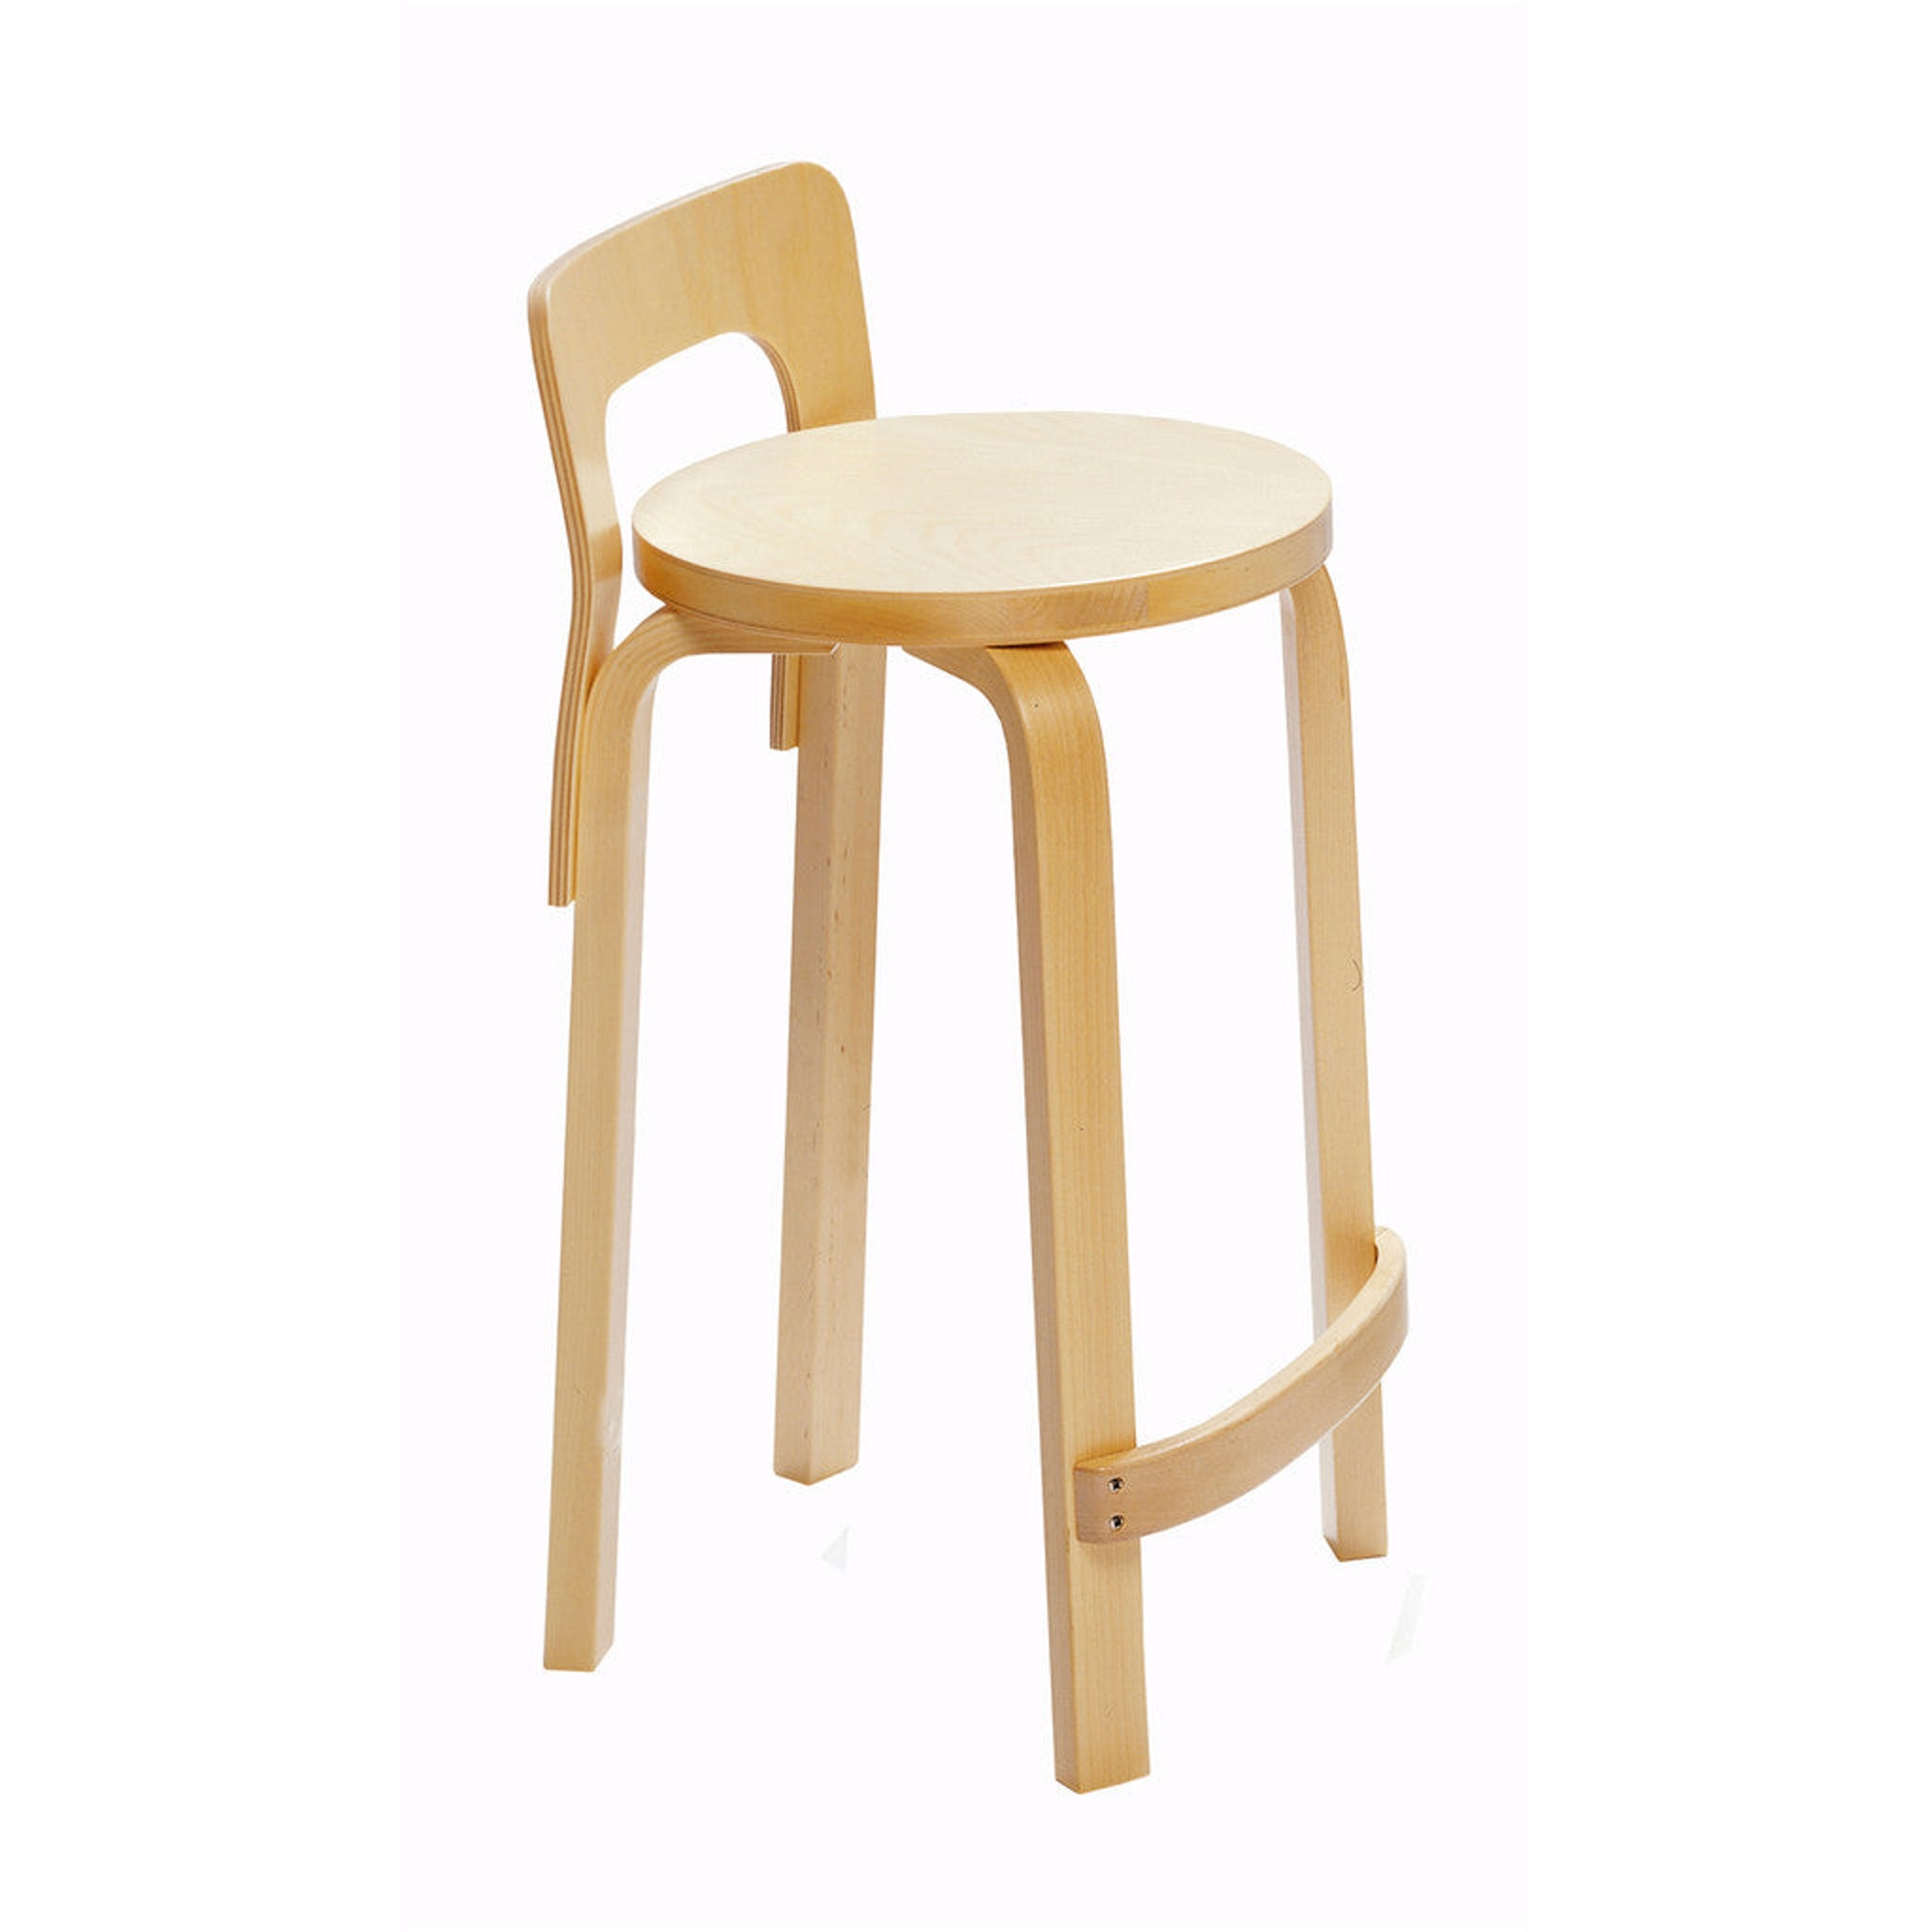 High Chair K65 by Artek